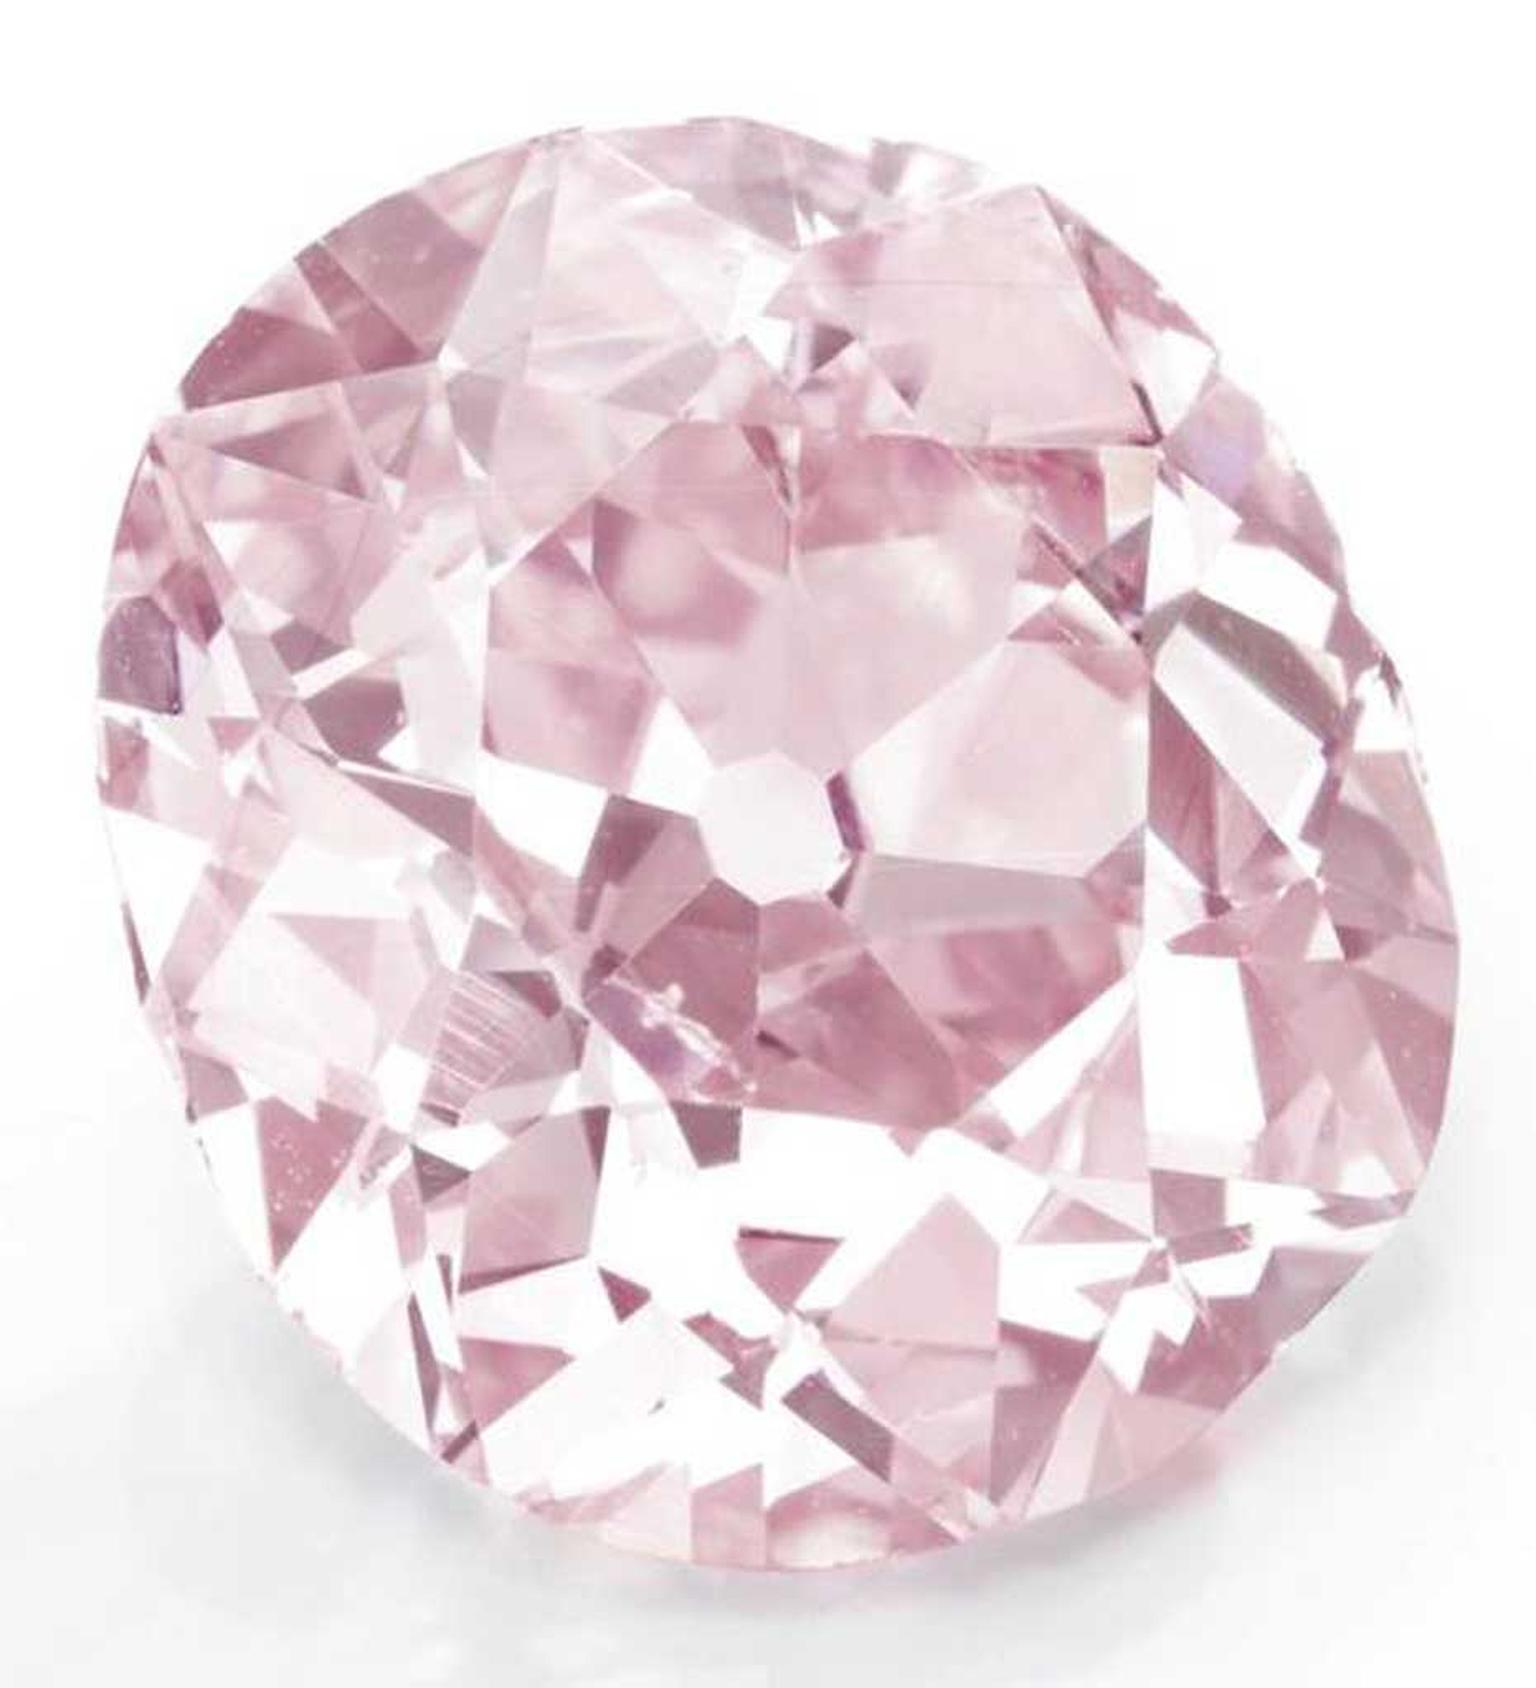 In 2012, Christie's New York sold a ring set with this 9.00 carat pink diamond from the turn-of-the-century from the estate of Huguette M. Clark for $15.7 million, making it the most valuable pink diamond ever sold at auction in America.